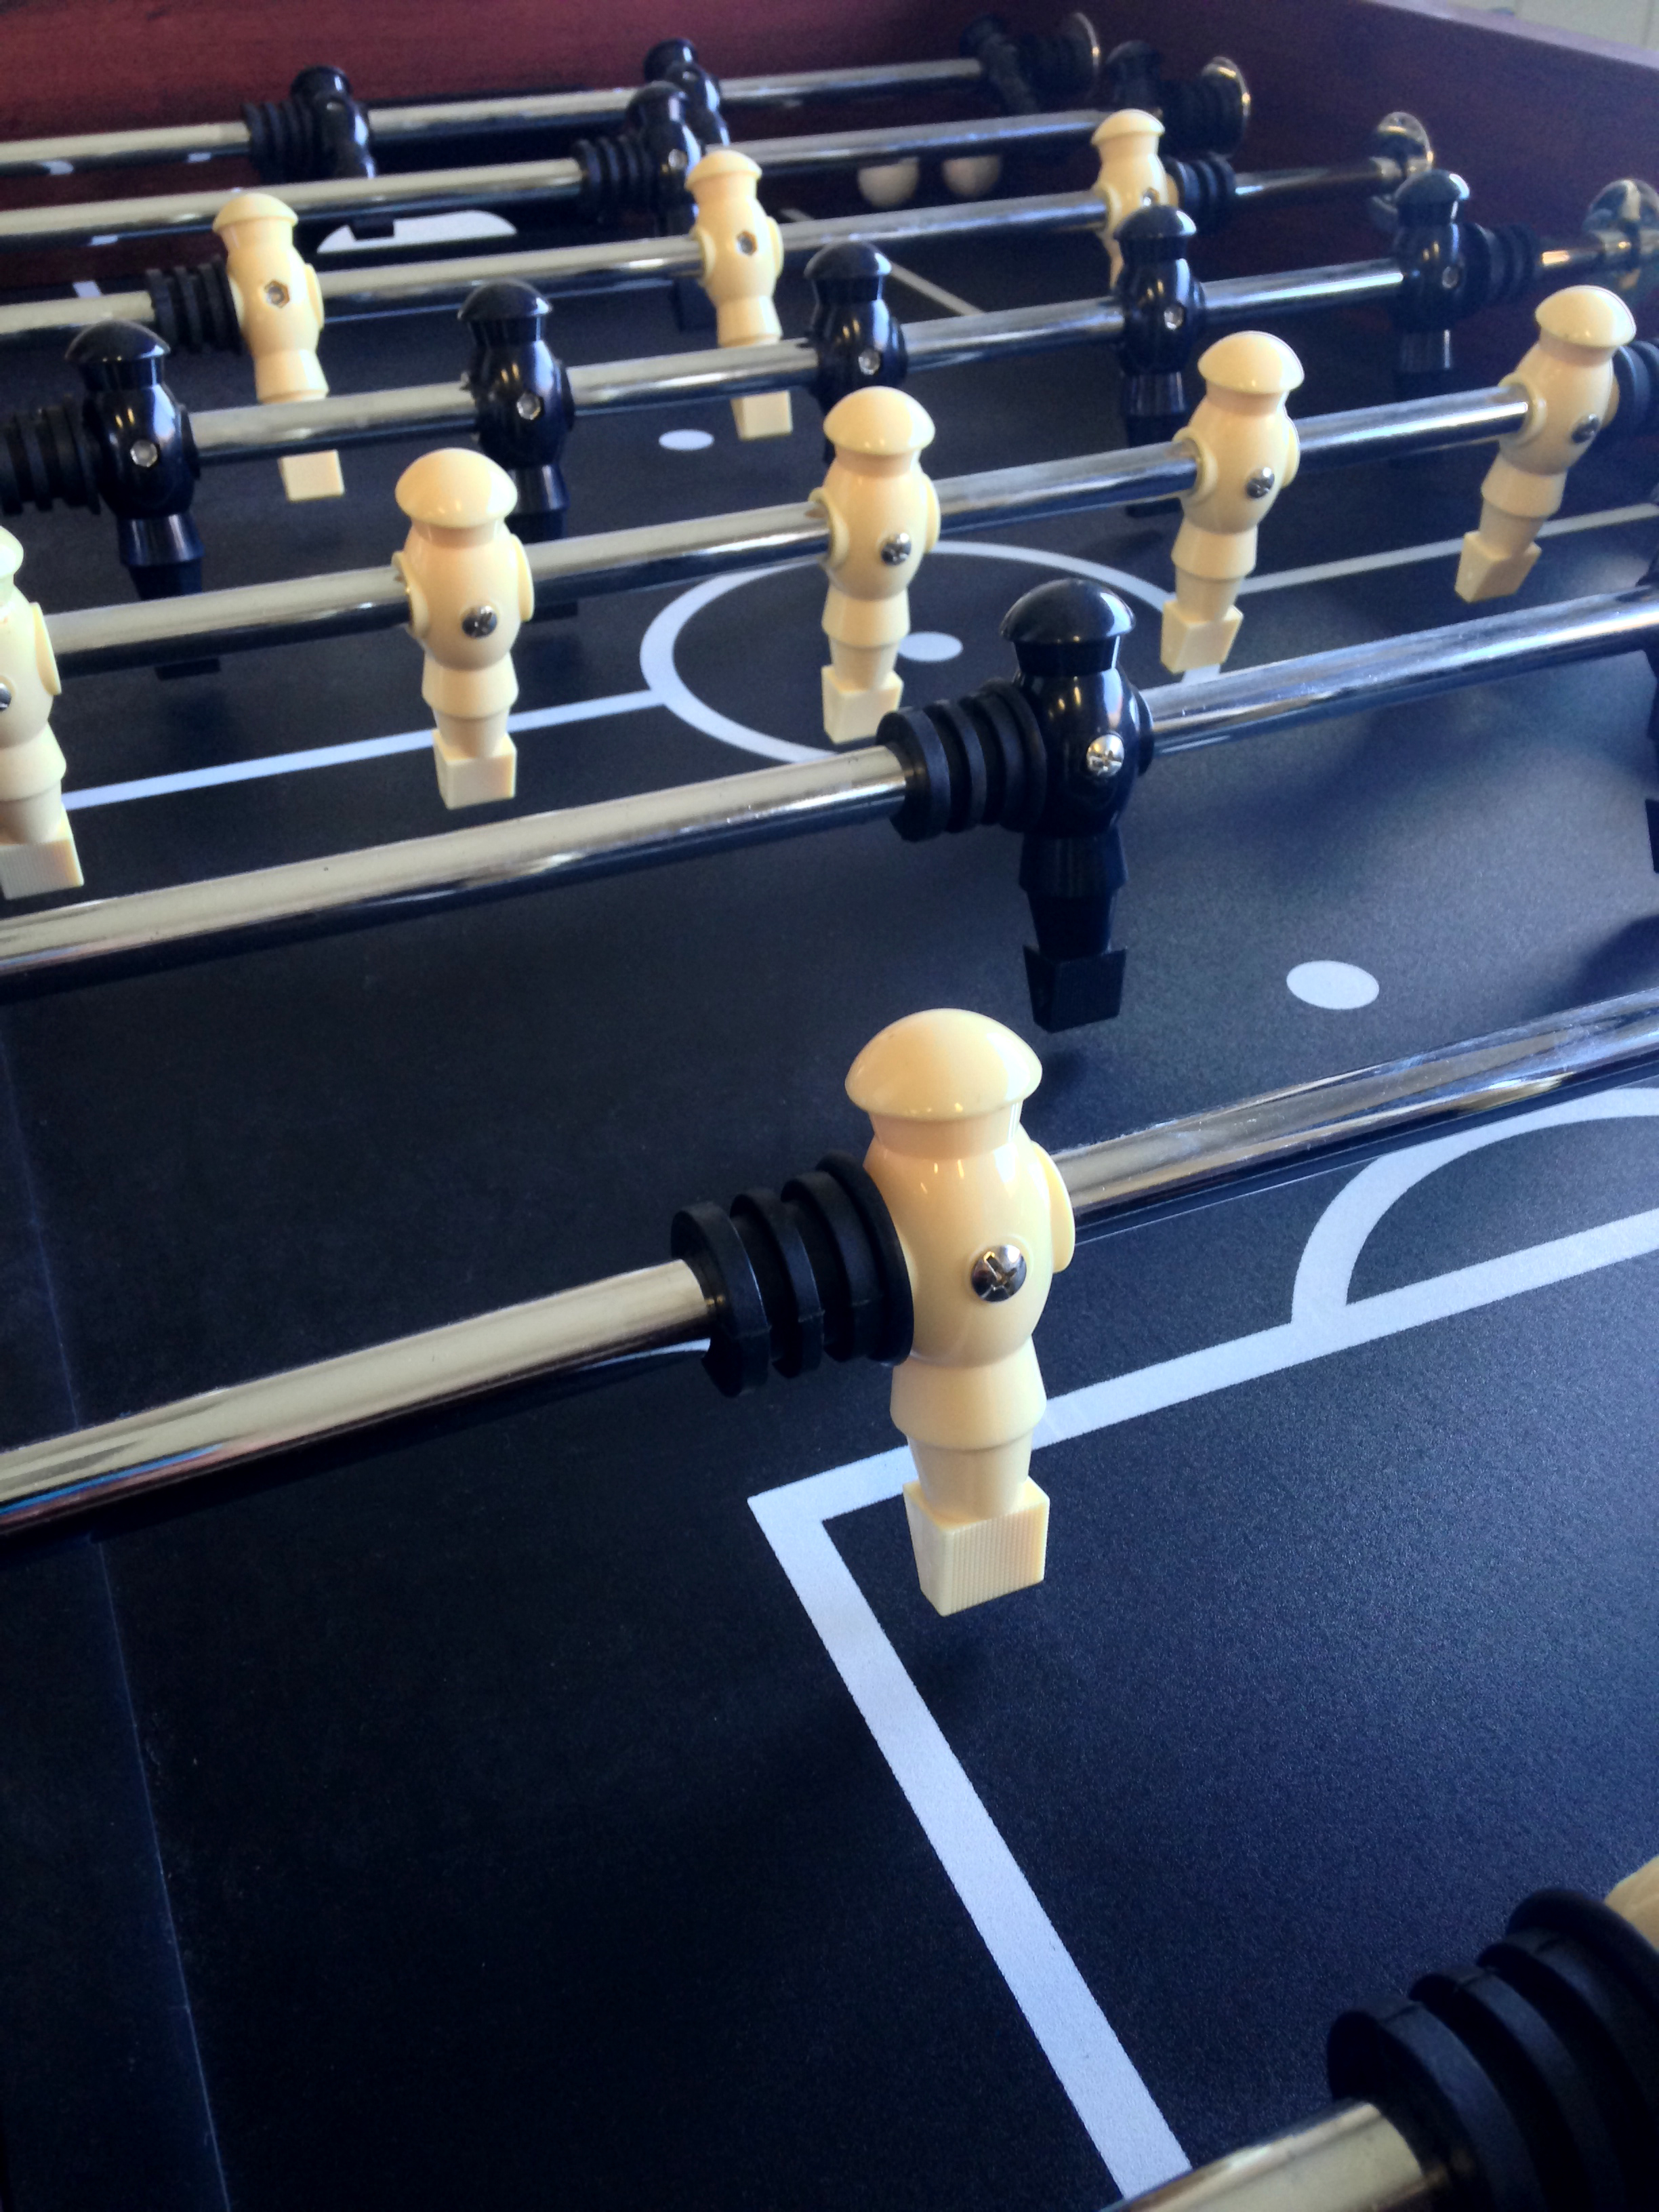 Fussball table players close up, soccer, players, game, Arcade, HQ Photo